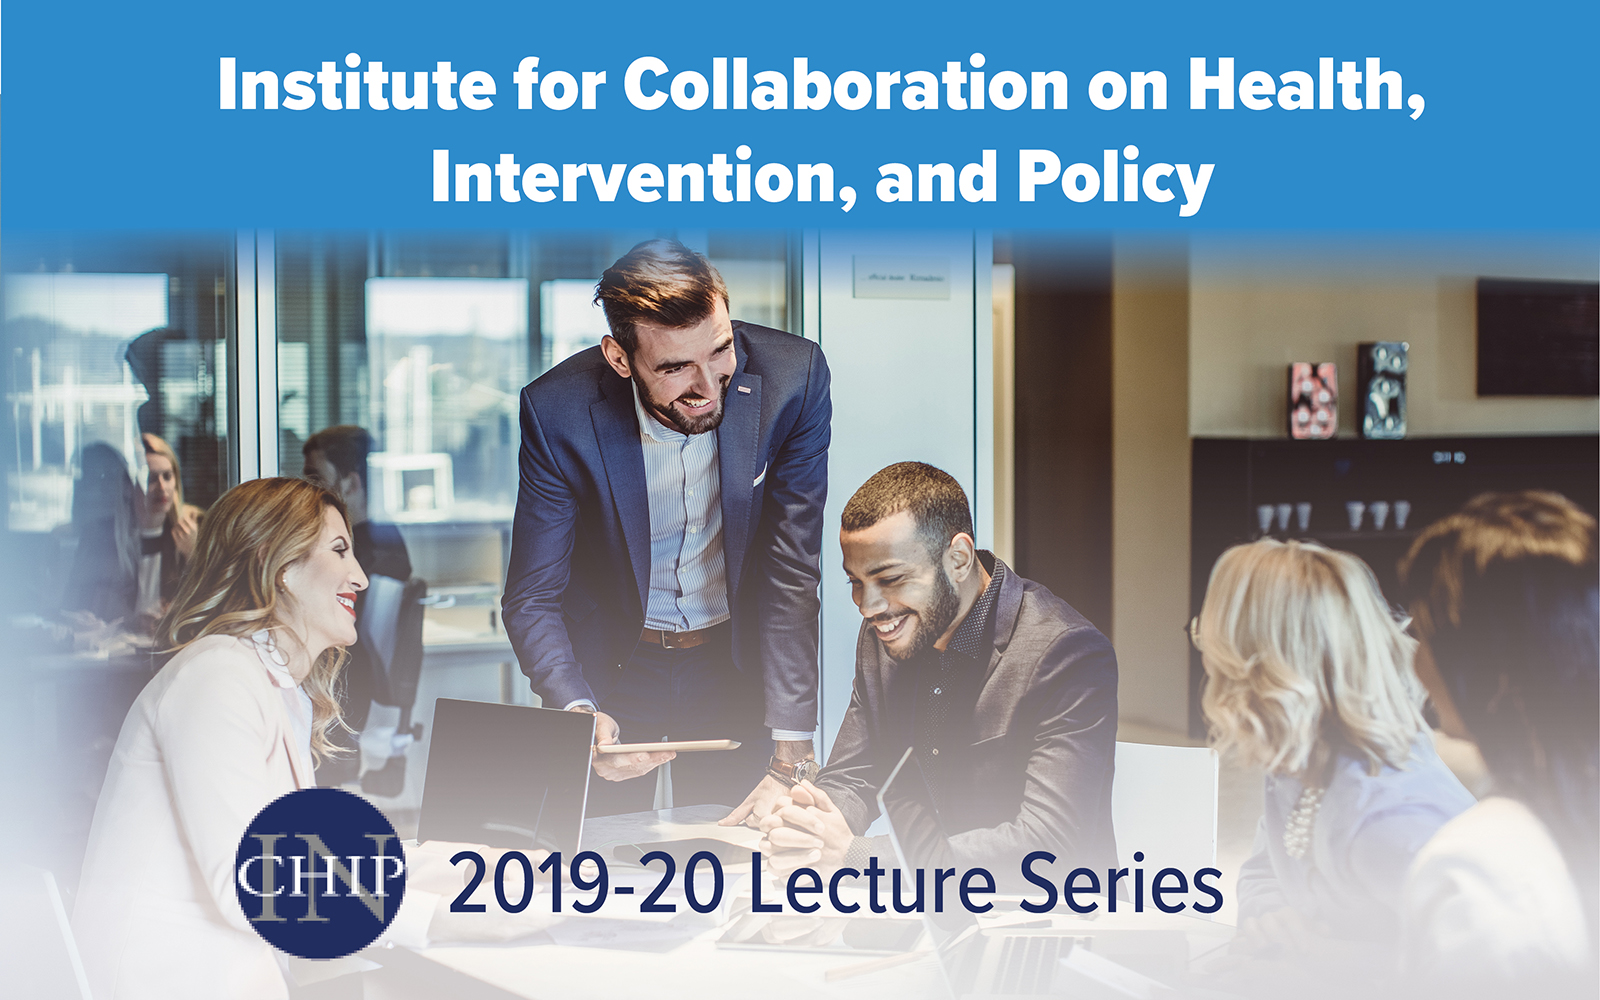 Stock Photograph of a group of businesspeople gathering. Text: Institute for Collaboration on Health, Intervention, and Policy (InCHIP) 2019-20 Lecture Series.